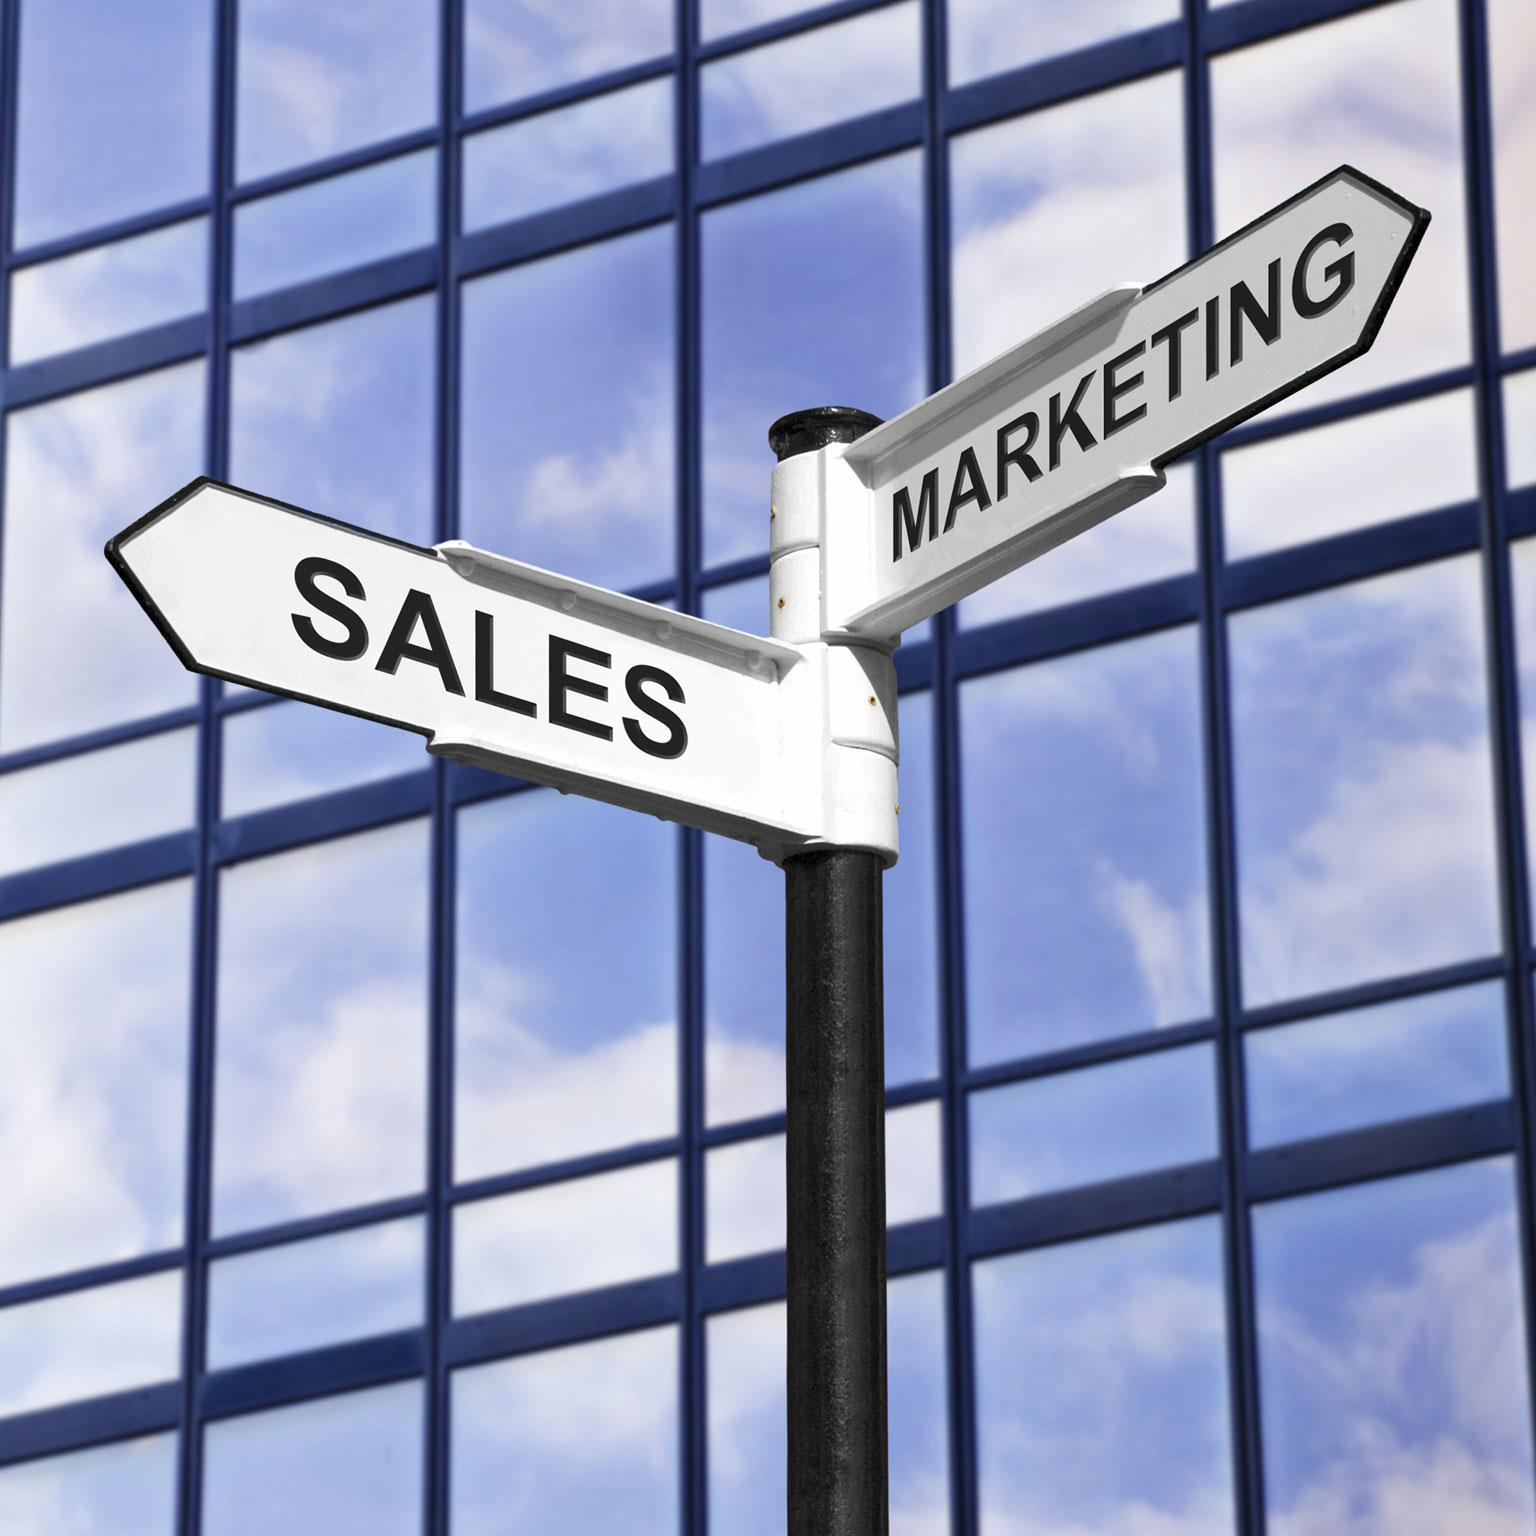 Marketing Sales: Building Marketing And Sales Capabilities To Beat The